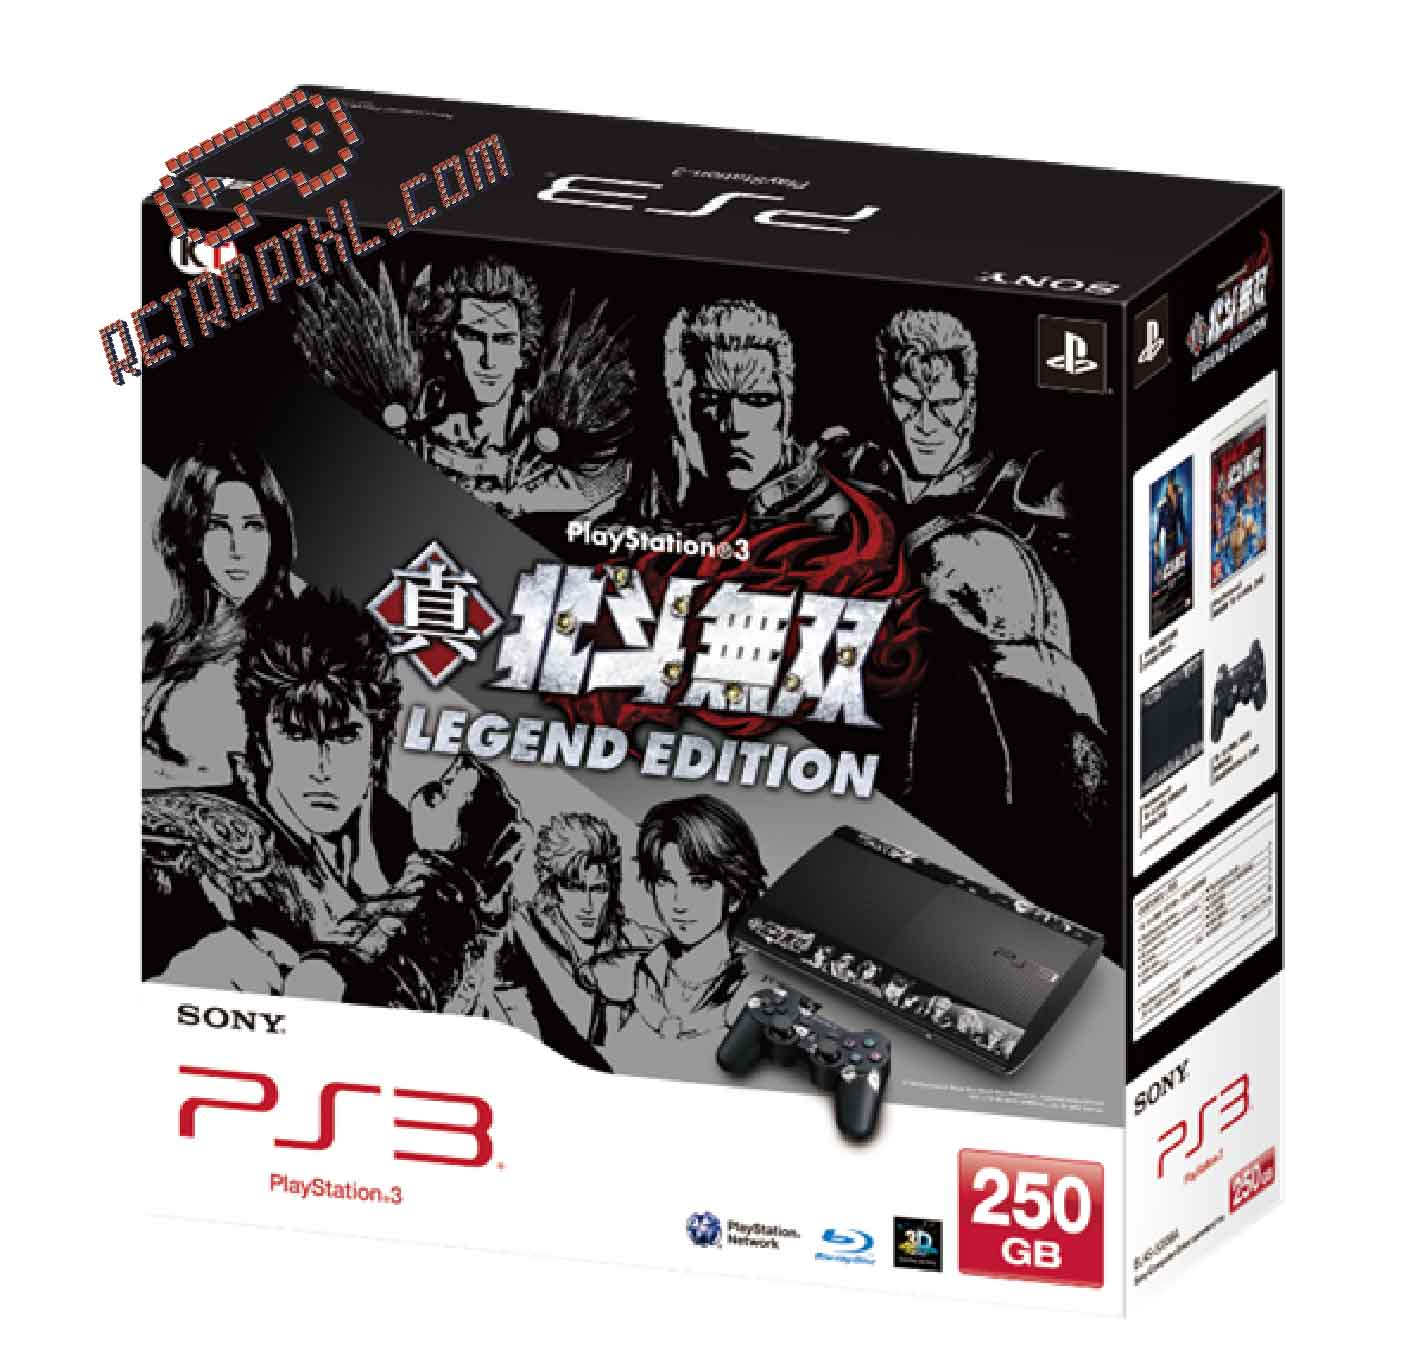 Edition For Ps3 Sony Playstation 3 Ps3 Hokuto No Ken Legend Limited Edition Bundle